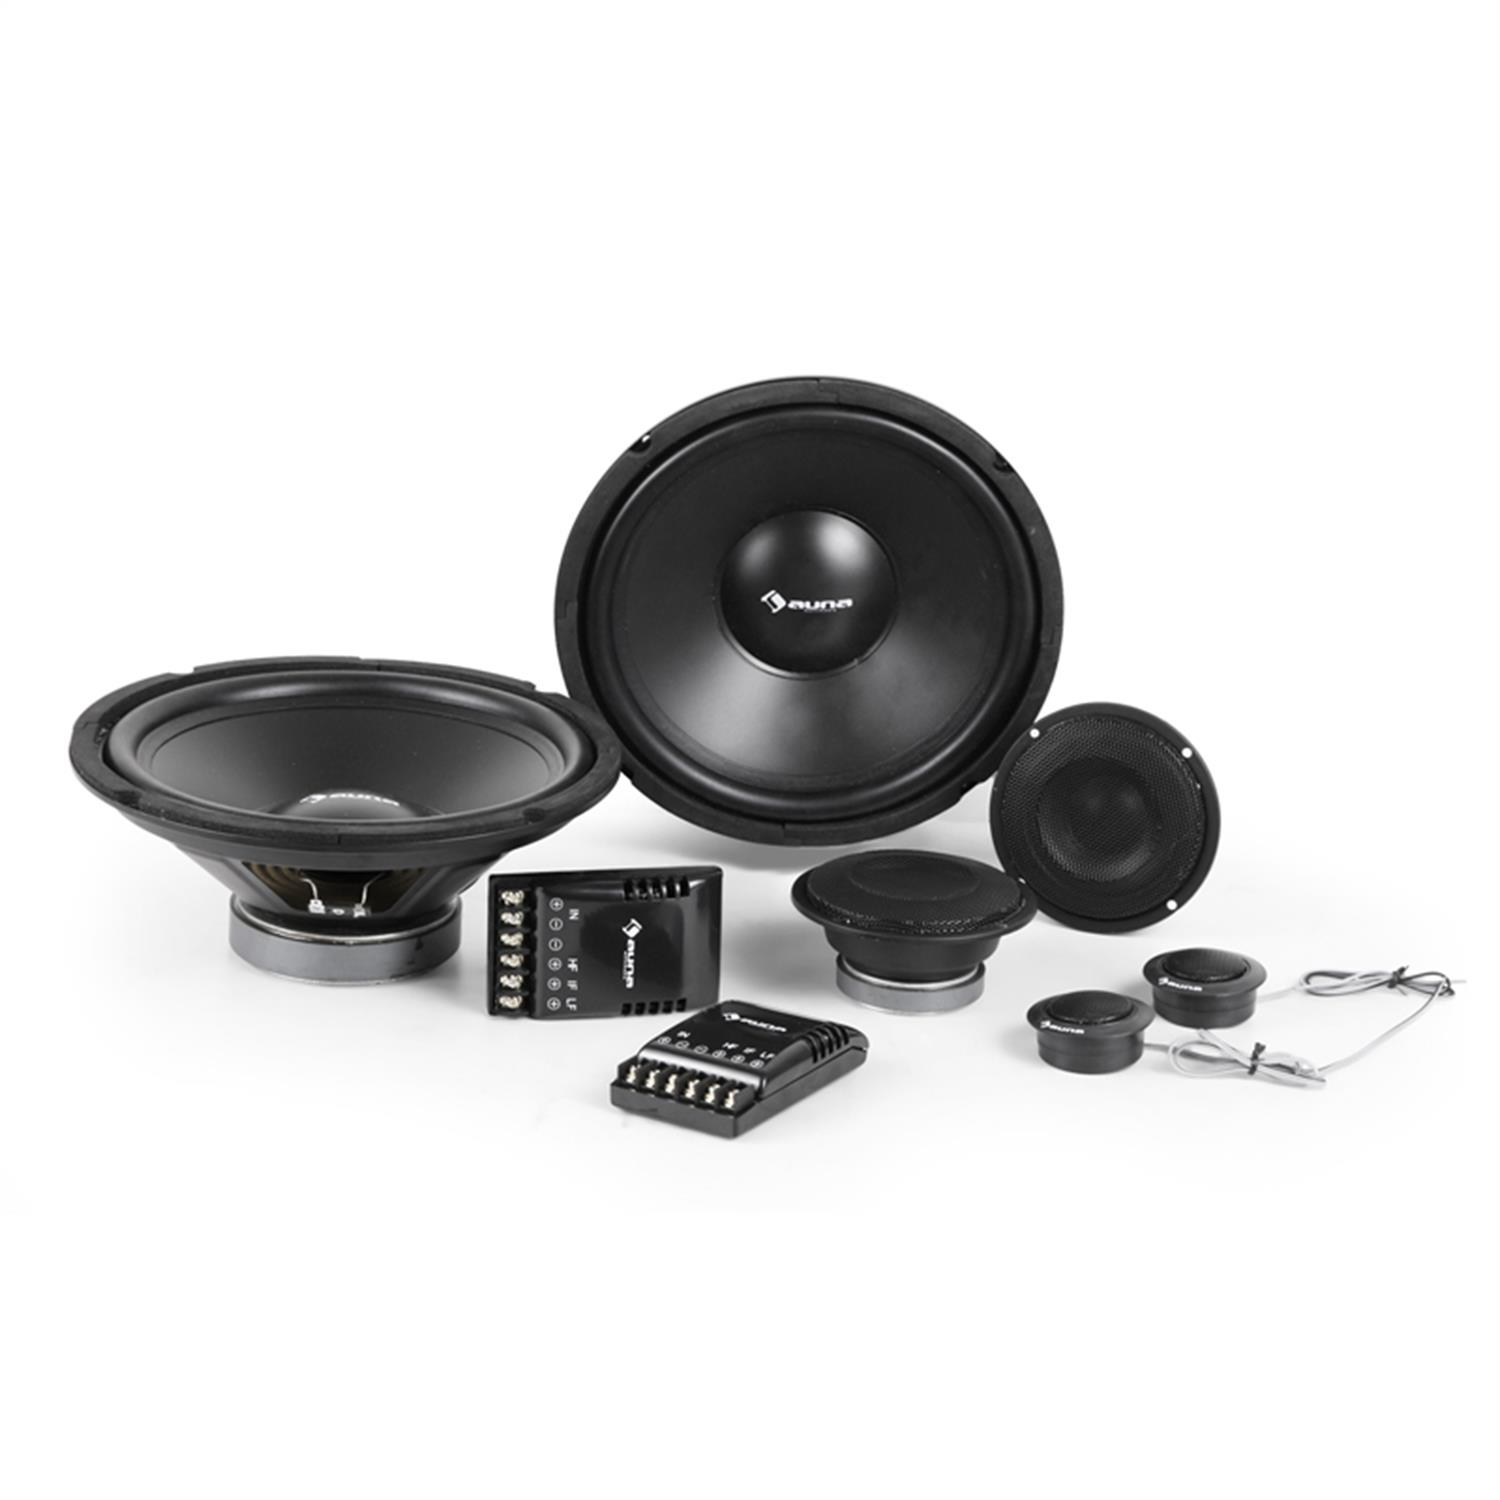 professional complete car stereo speakers set by auna. Black Bedroom Furniture Sets. Home Design Ideas